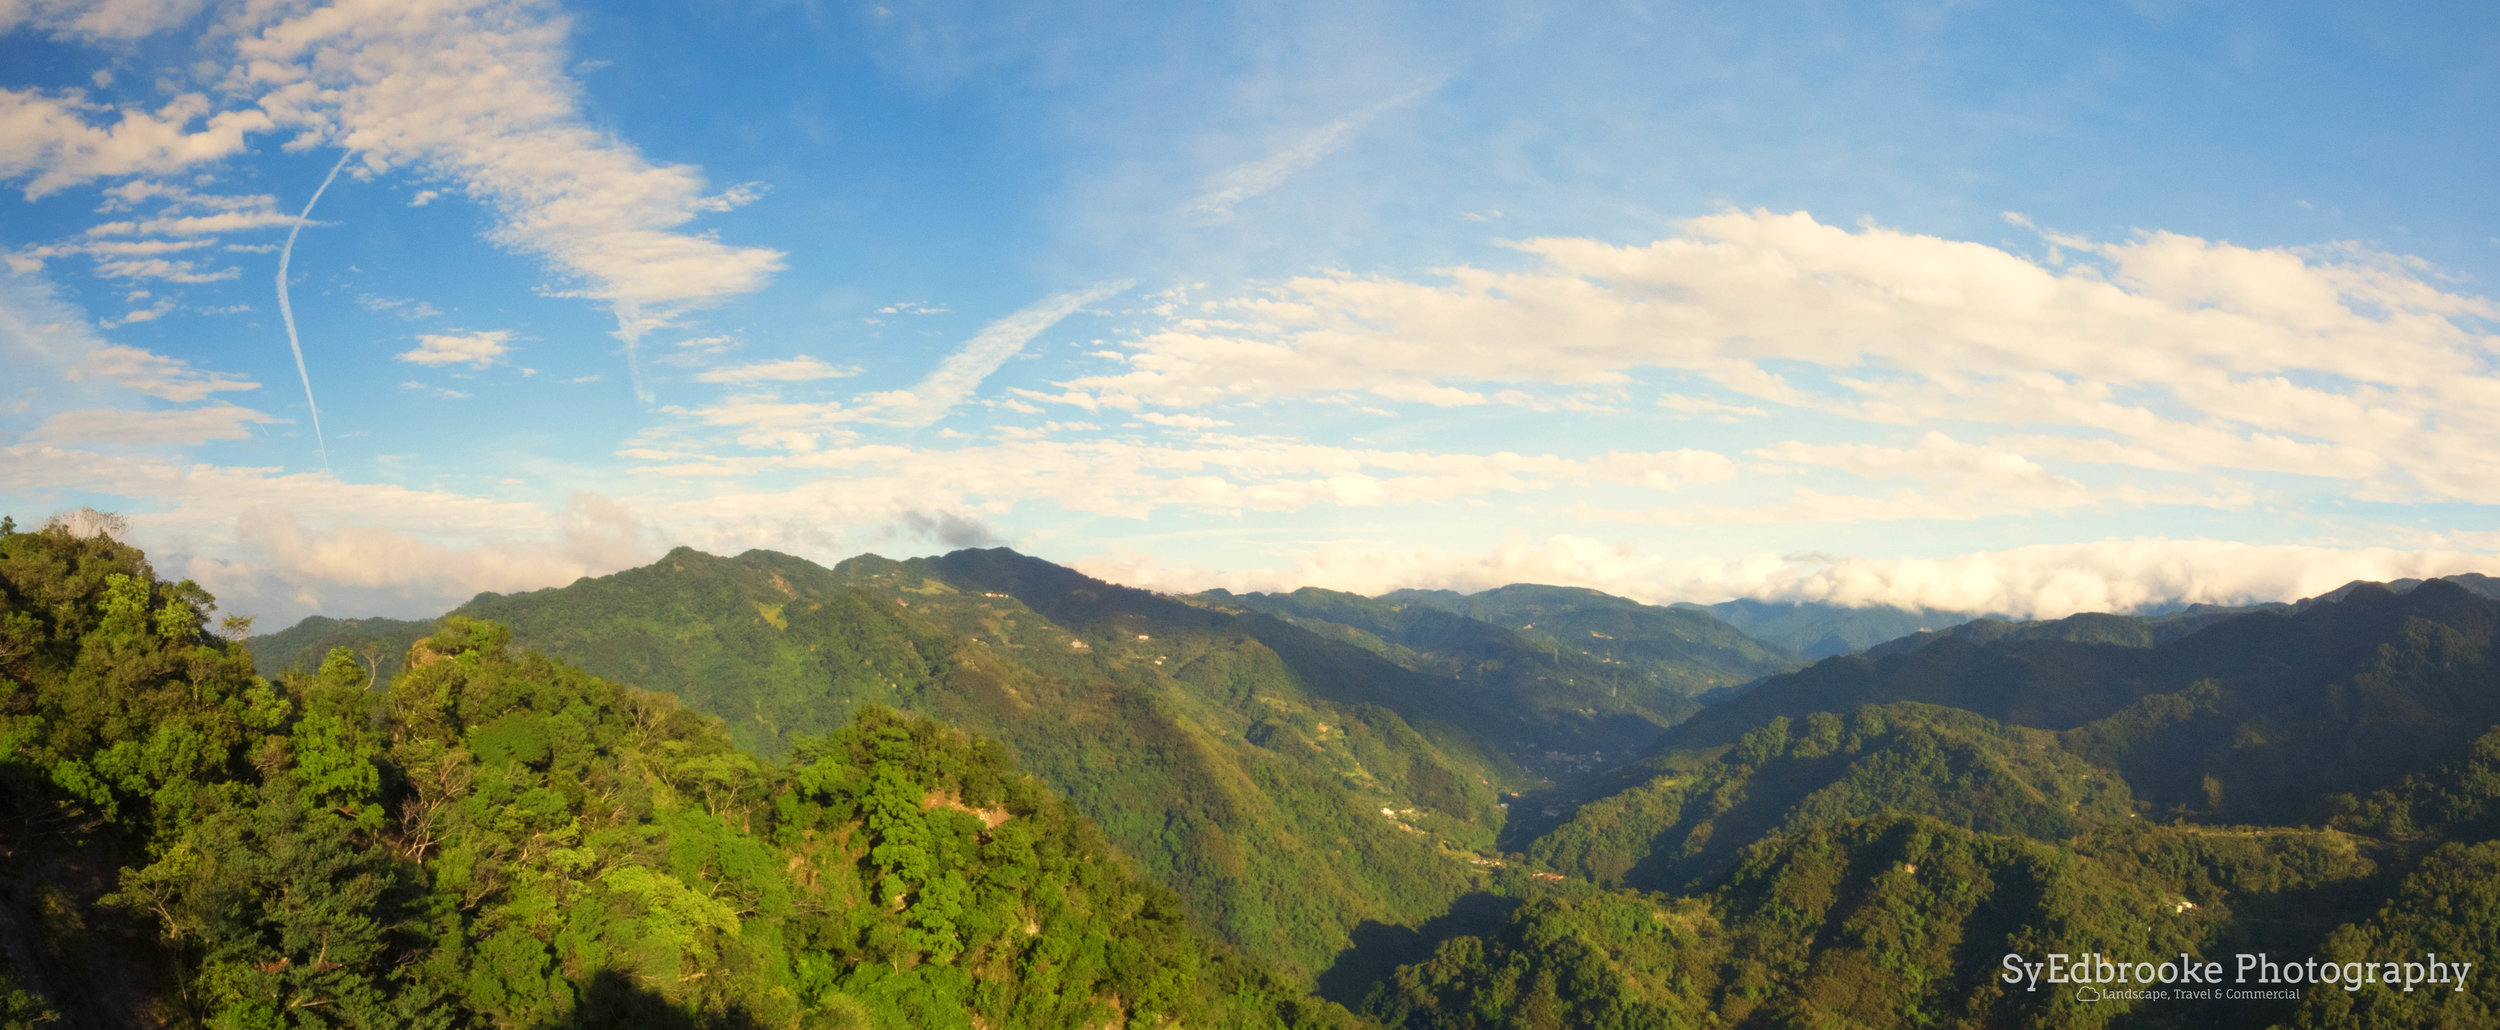 a panoramic shot of the valley stretching into the distance mountains. f22, ISO 640, 1/60, 24mm